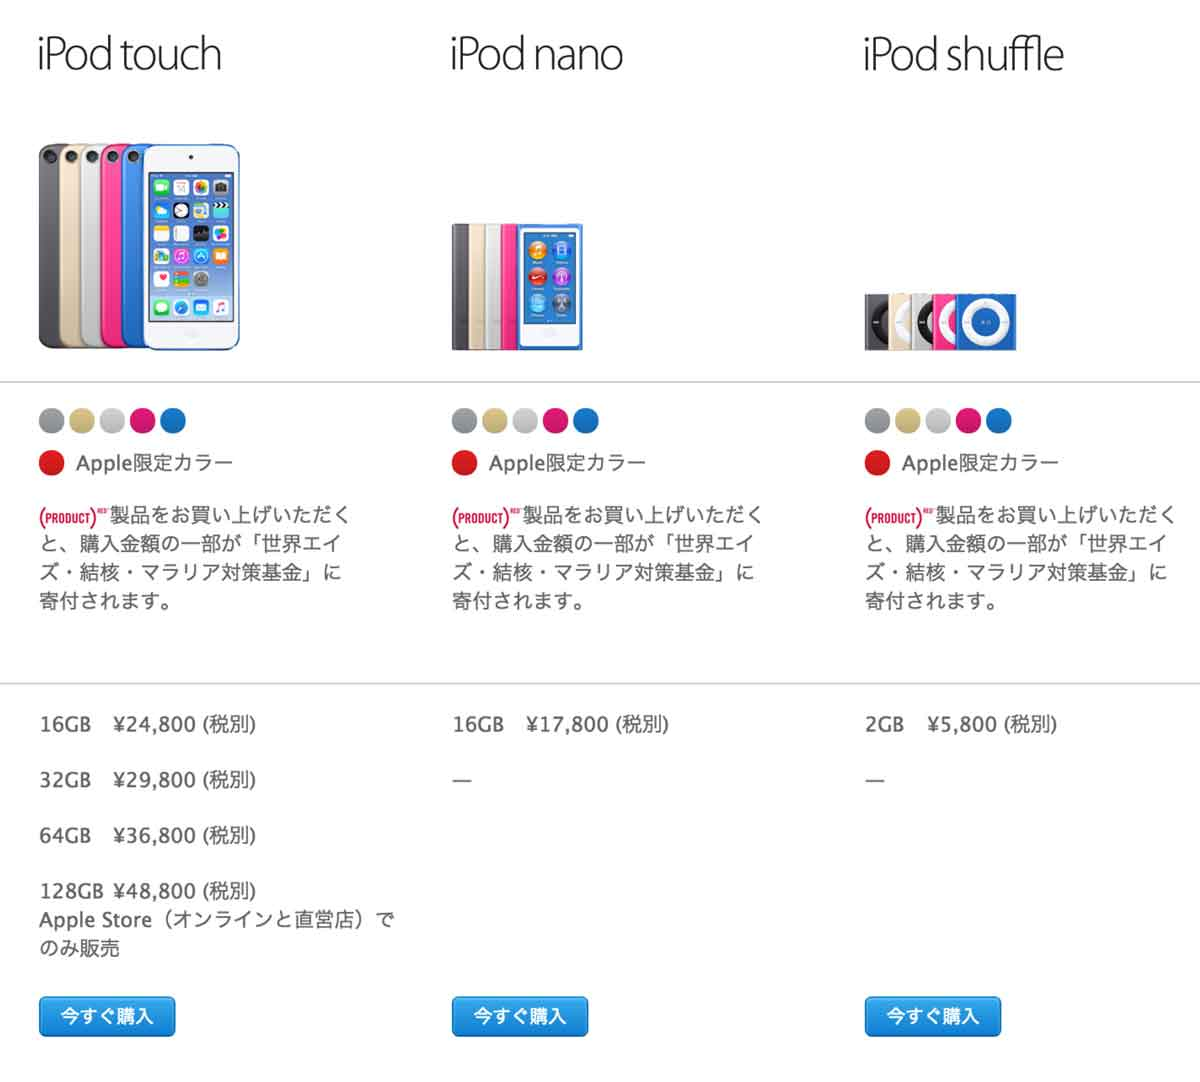 iPod touch(6th Gen.)iPod nano(7th Gen.)iPod shuffle(7th Gen.)比較